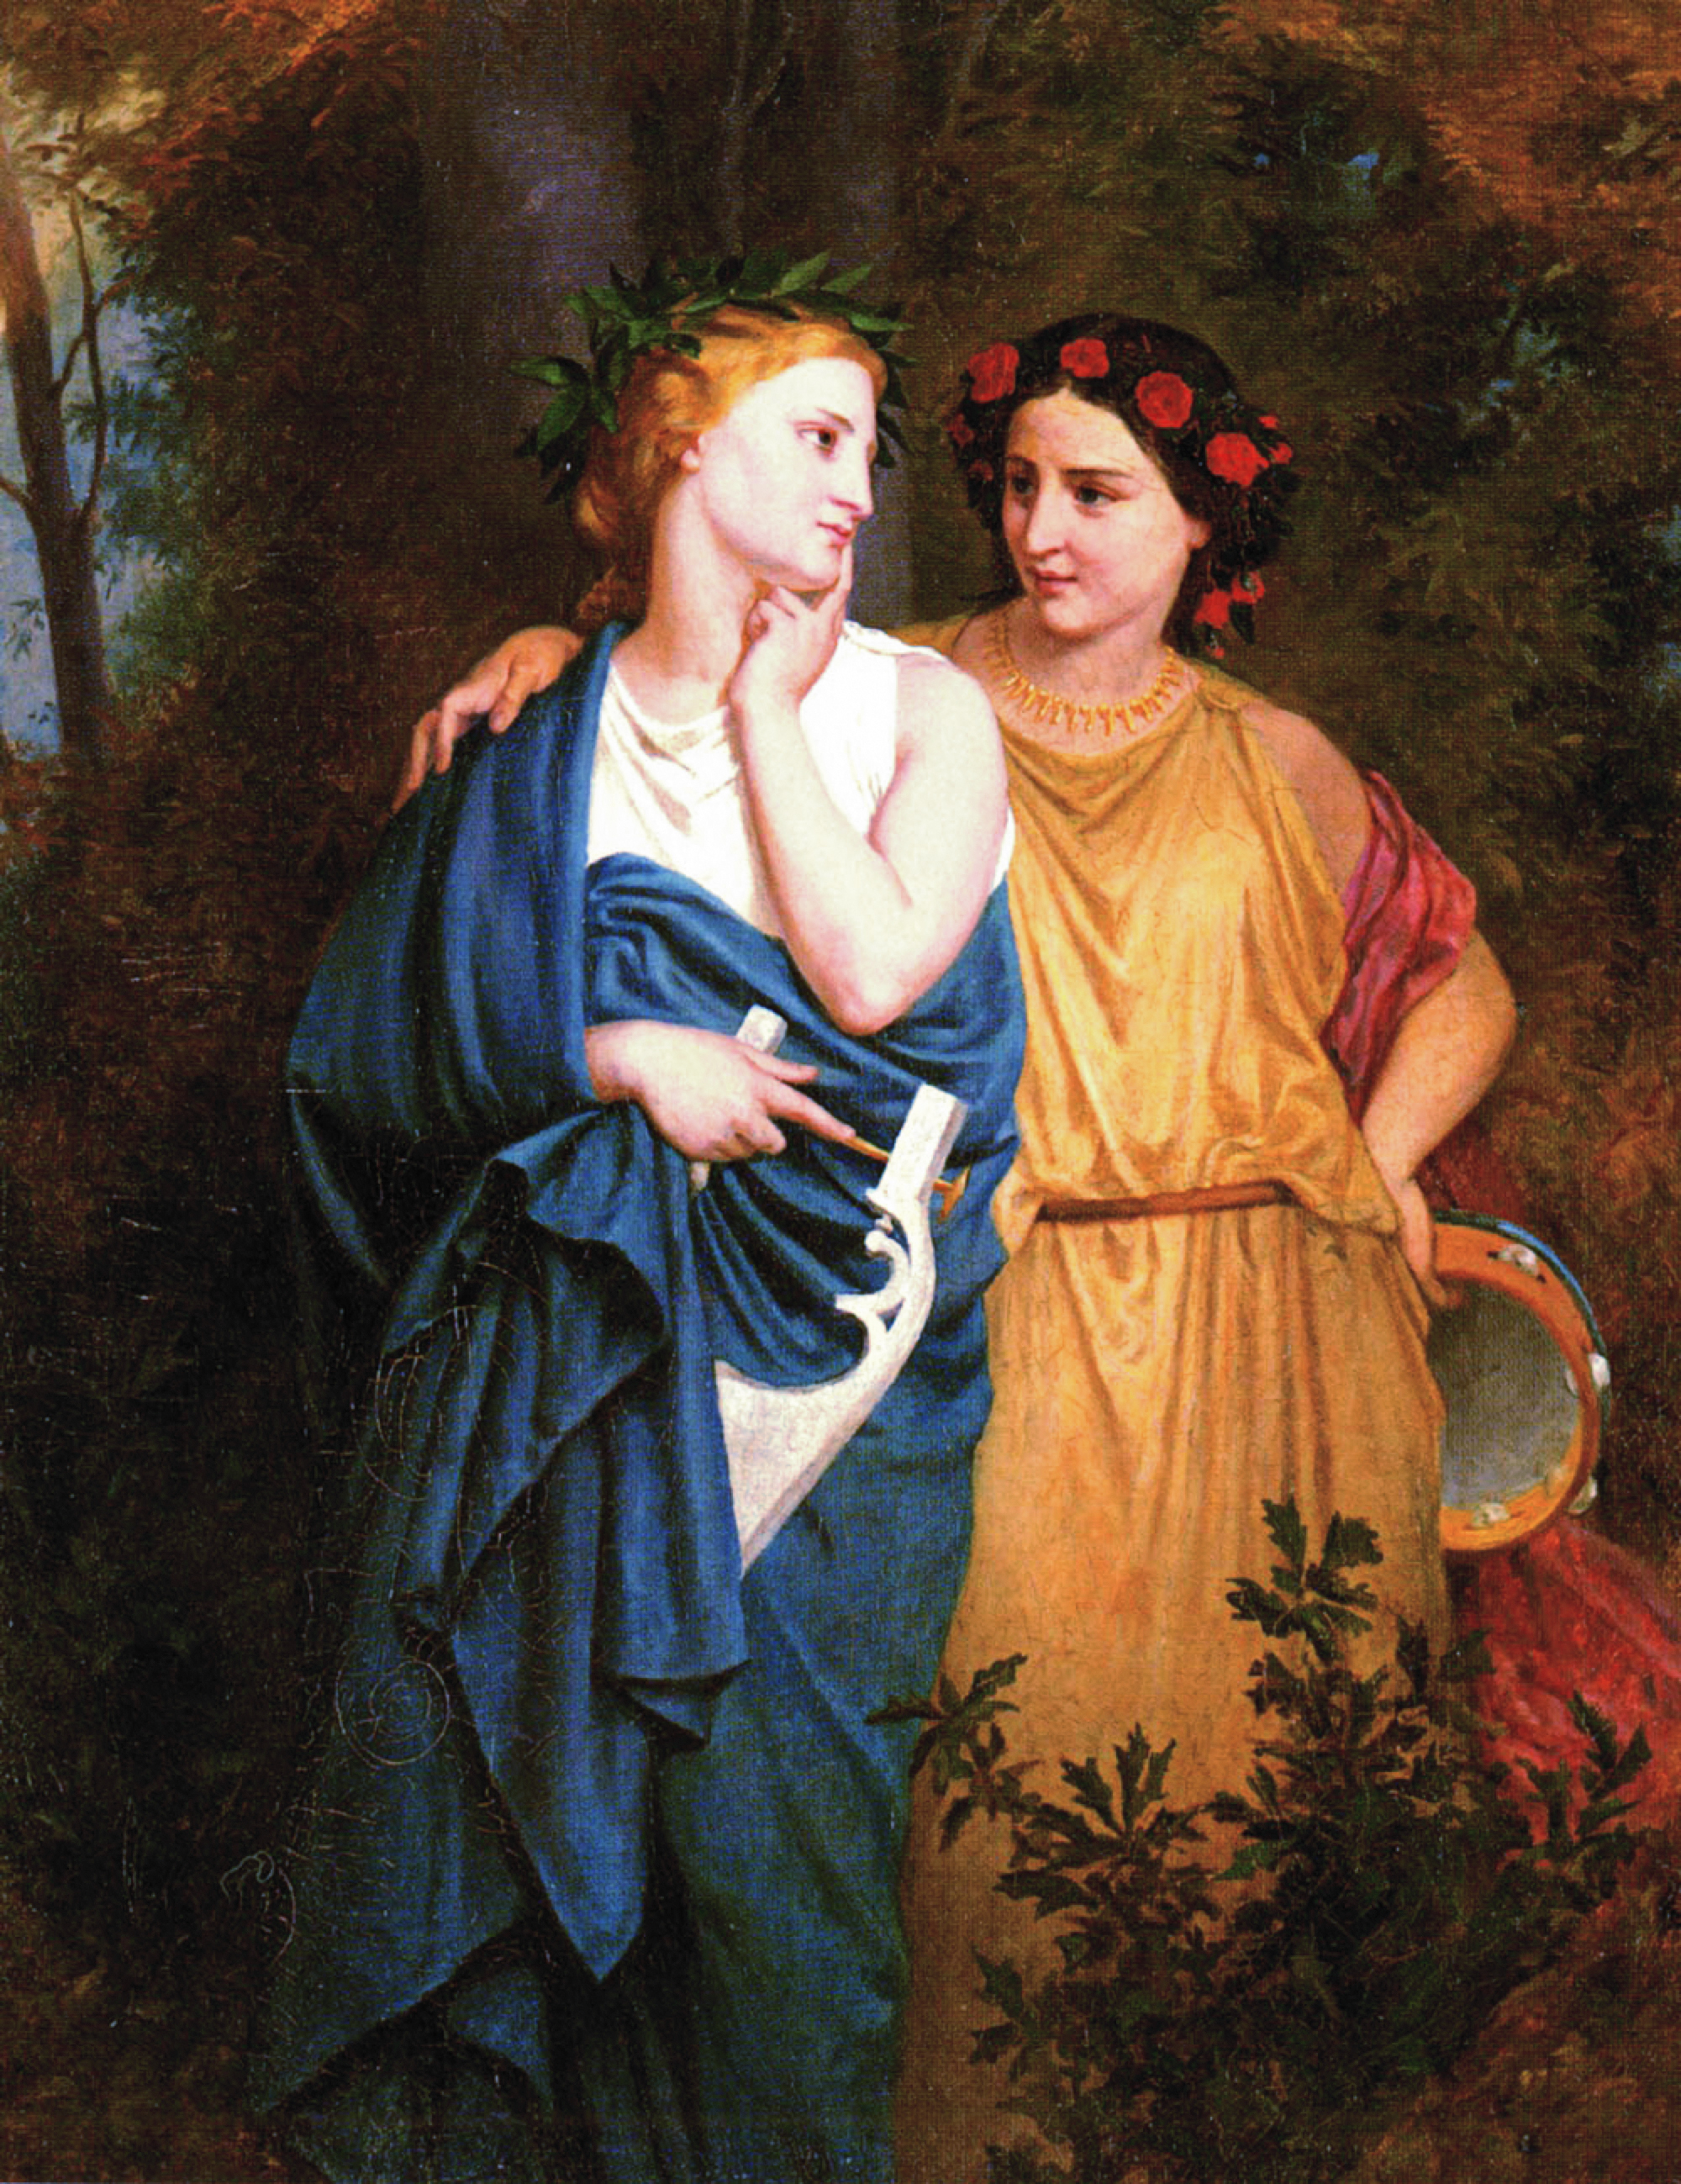 http://upload.wikimedia.org/wikipedia/commons/a/ad/Gardner-Philomena_and_Procne.jpg